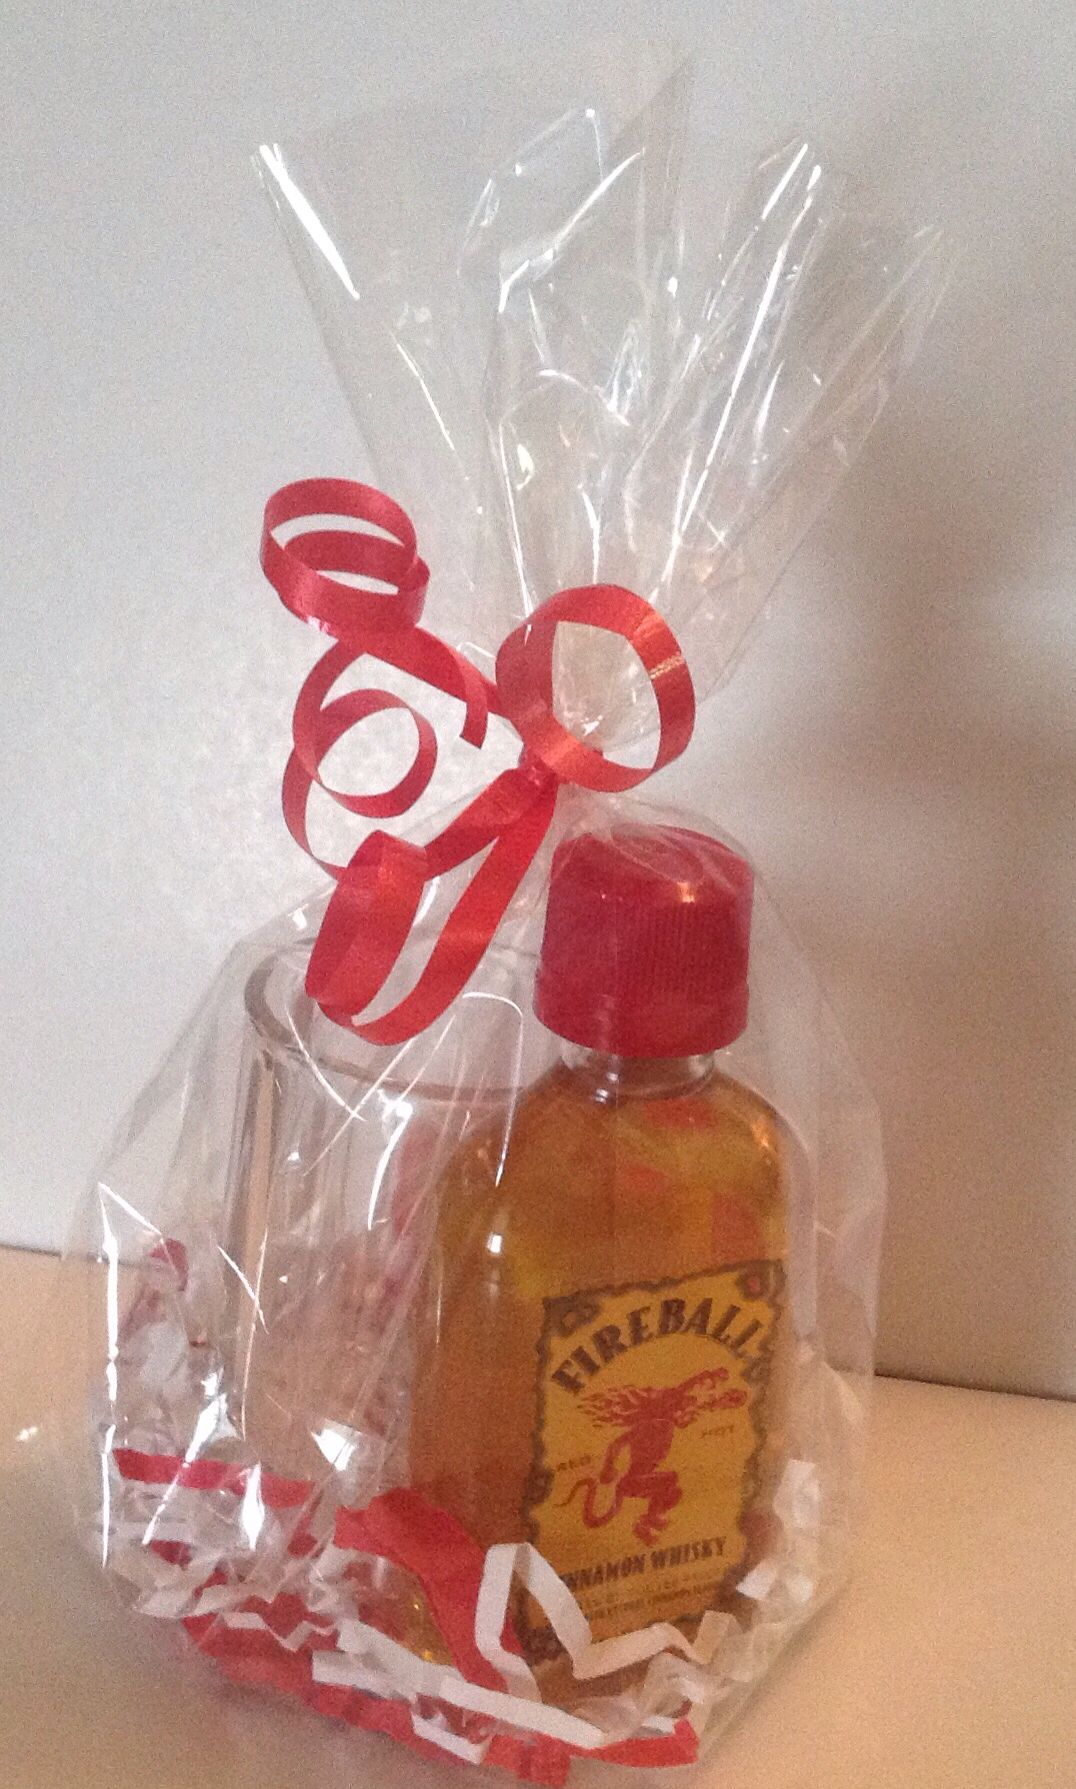 Have A Fireball Whiskey Shot Mini Bottle Of Fireball Shot Glass Tied In A Cellophane Bag With Some Sh Mini Alcohol Bottles Whiskey Gifts Fun Hostess Gifts